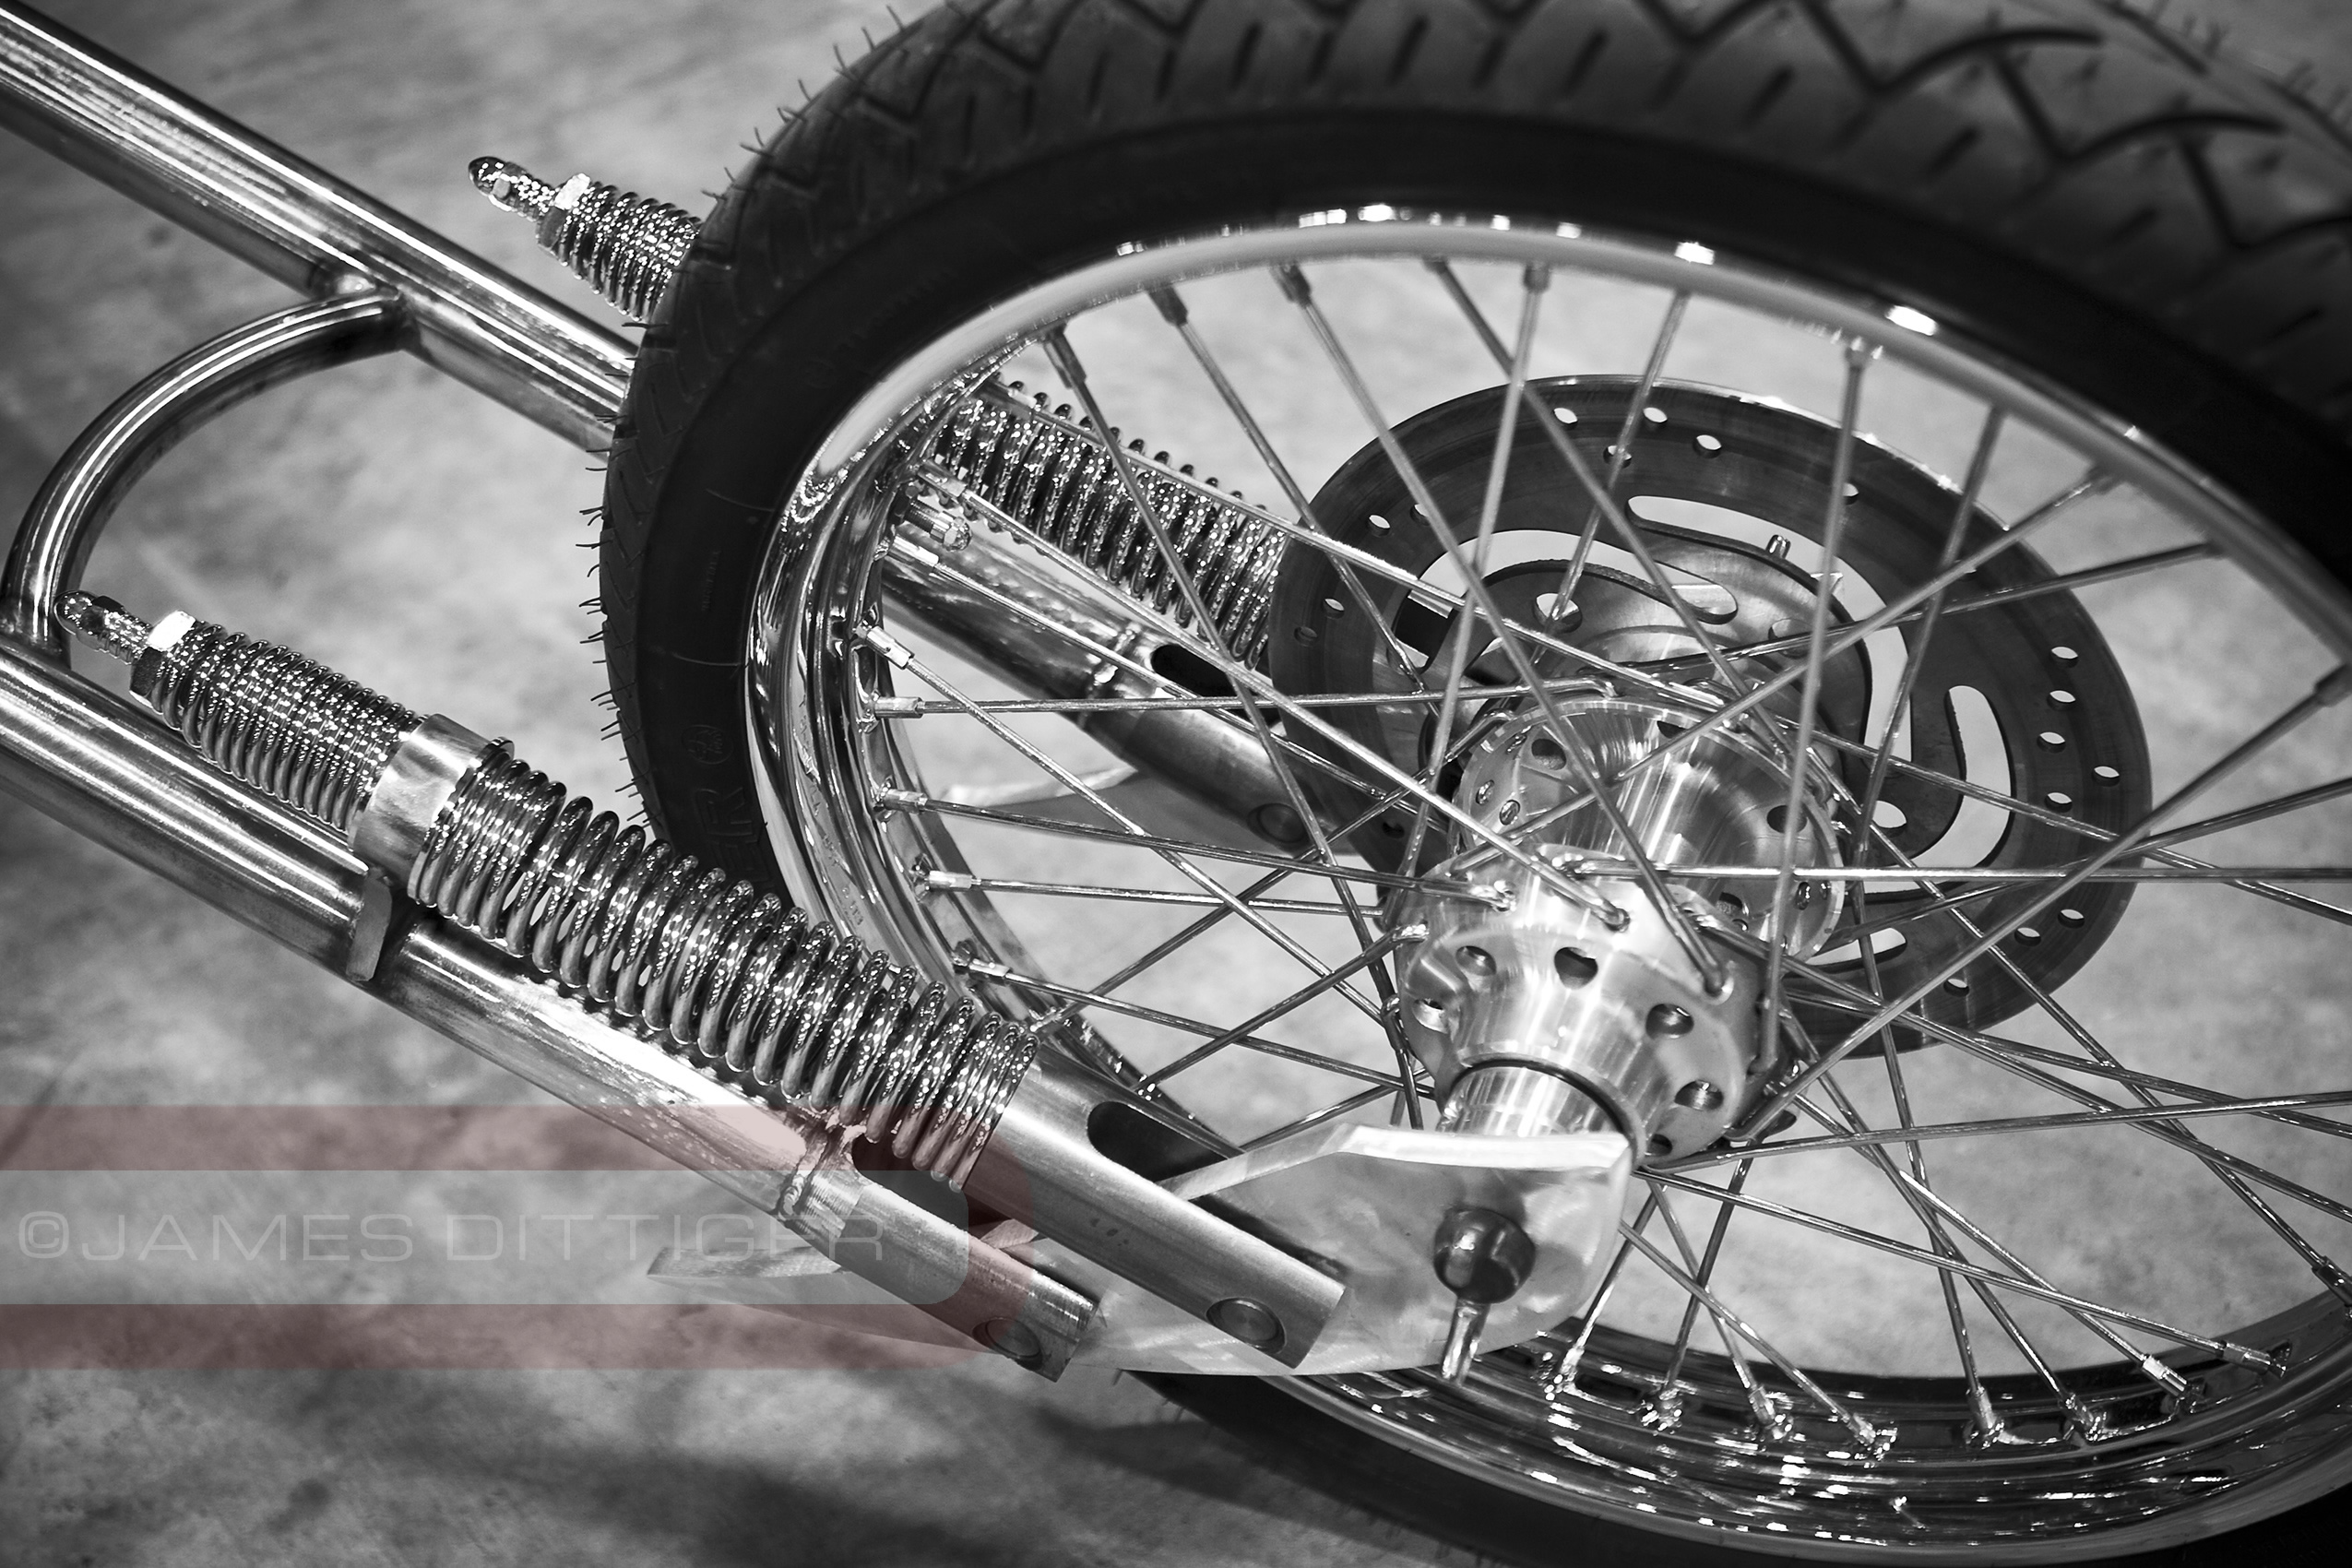 West Coast Custom Bike Show